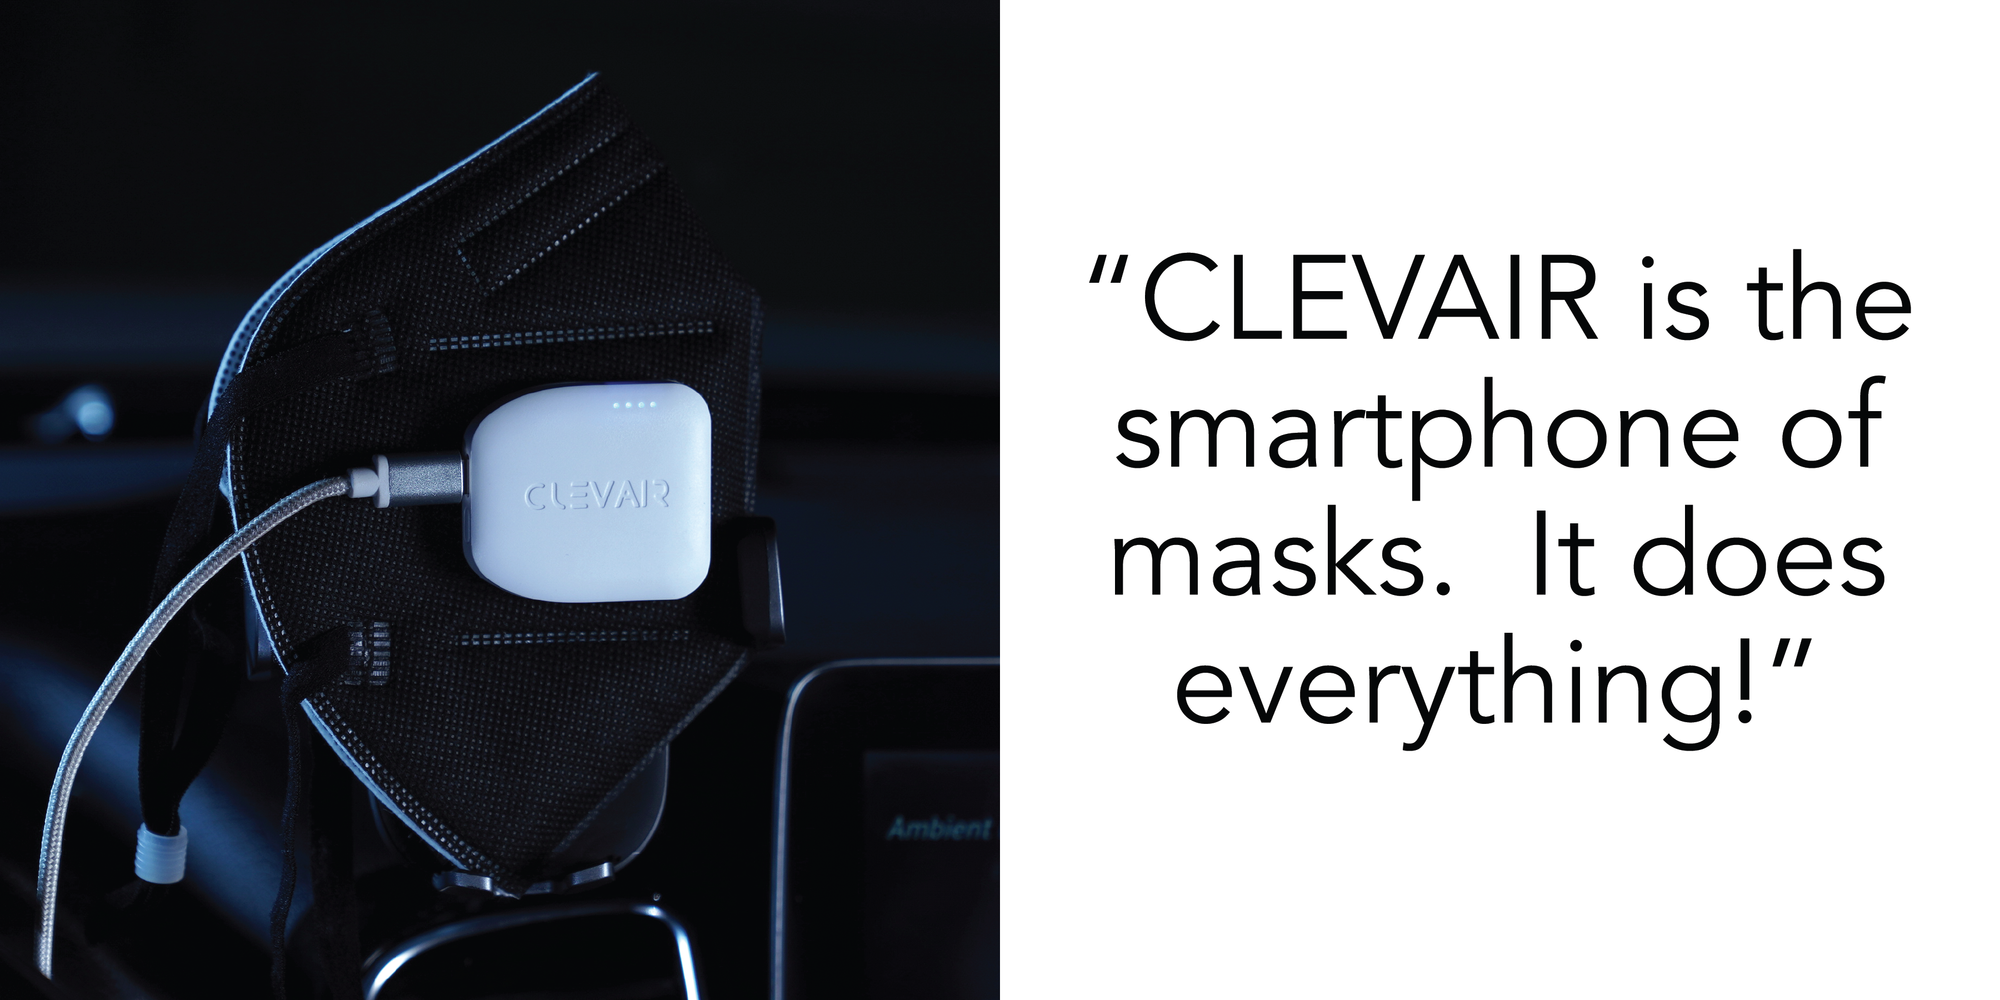 Clevair is the smartphone of masks.  It does everything.  iPhone apple device mask lightning charger cable USB USBC Android Smartwatch Patent Pending Clean Air Technology. N95 KN95 Mask N99 reusable washable air purifying fan UVC light UV light virus